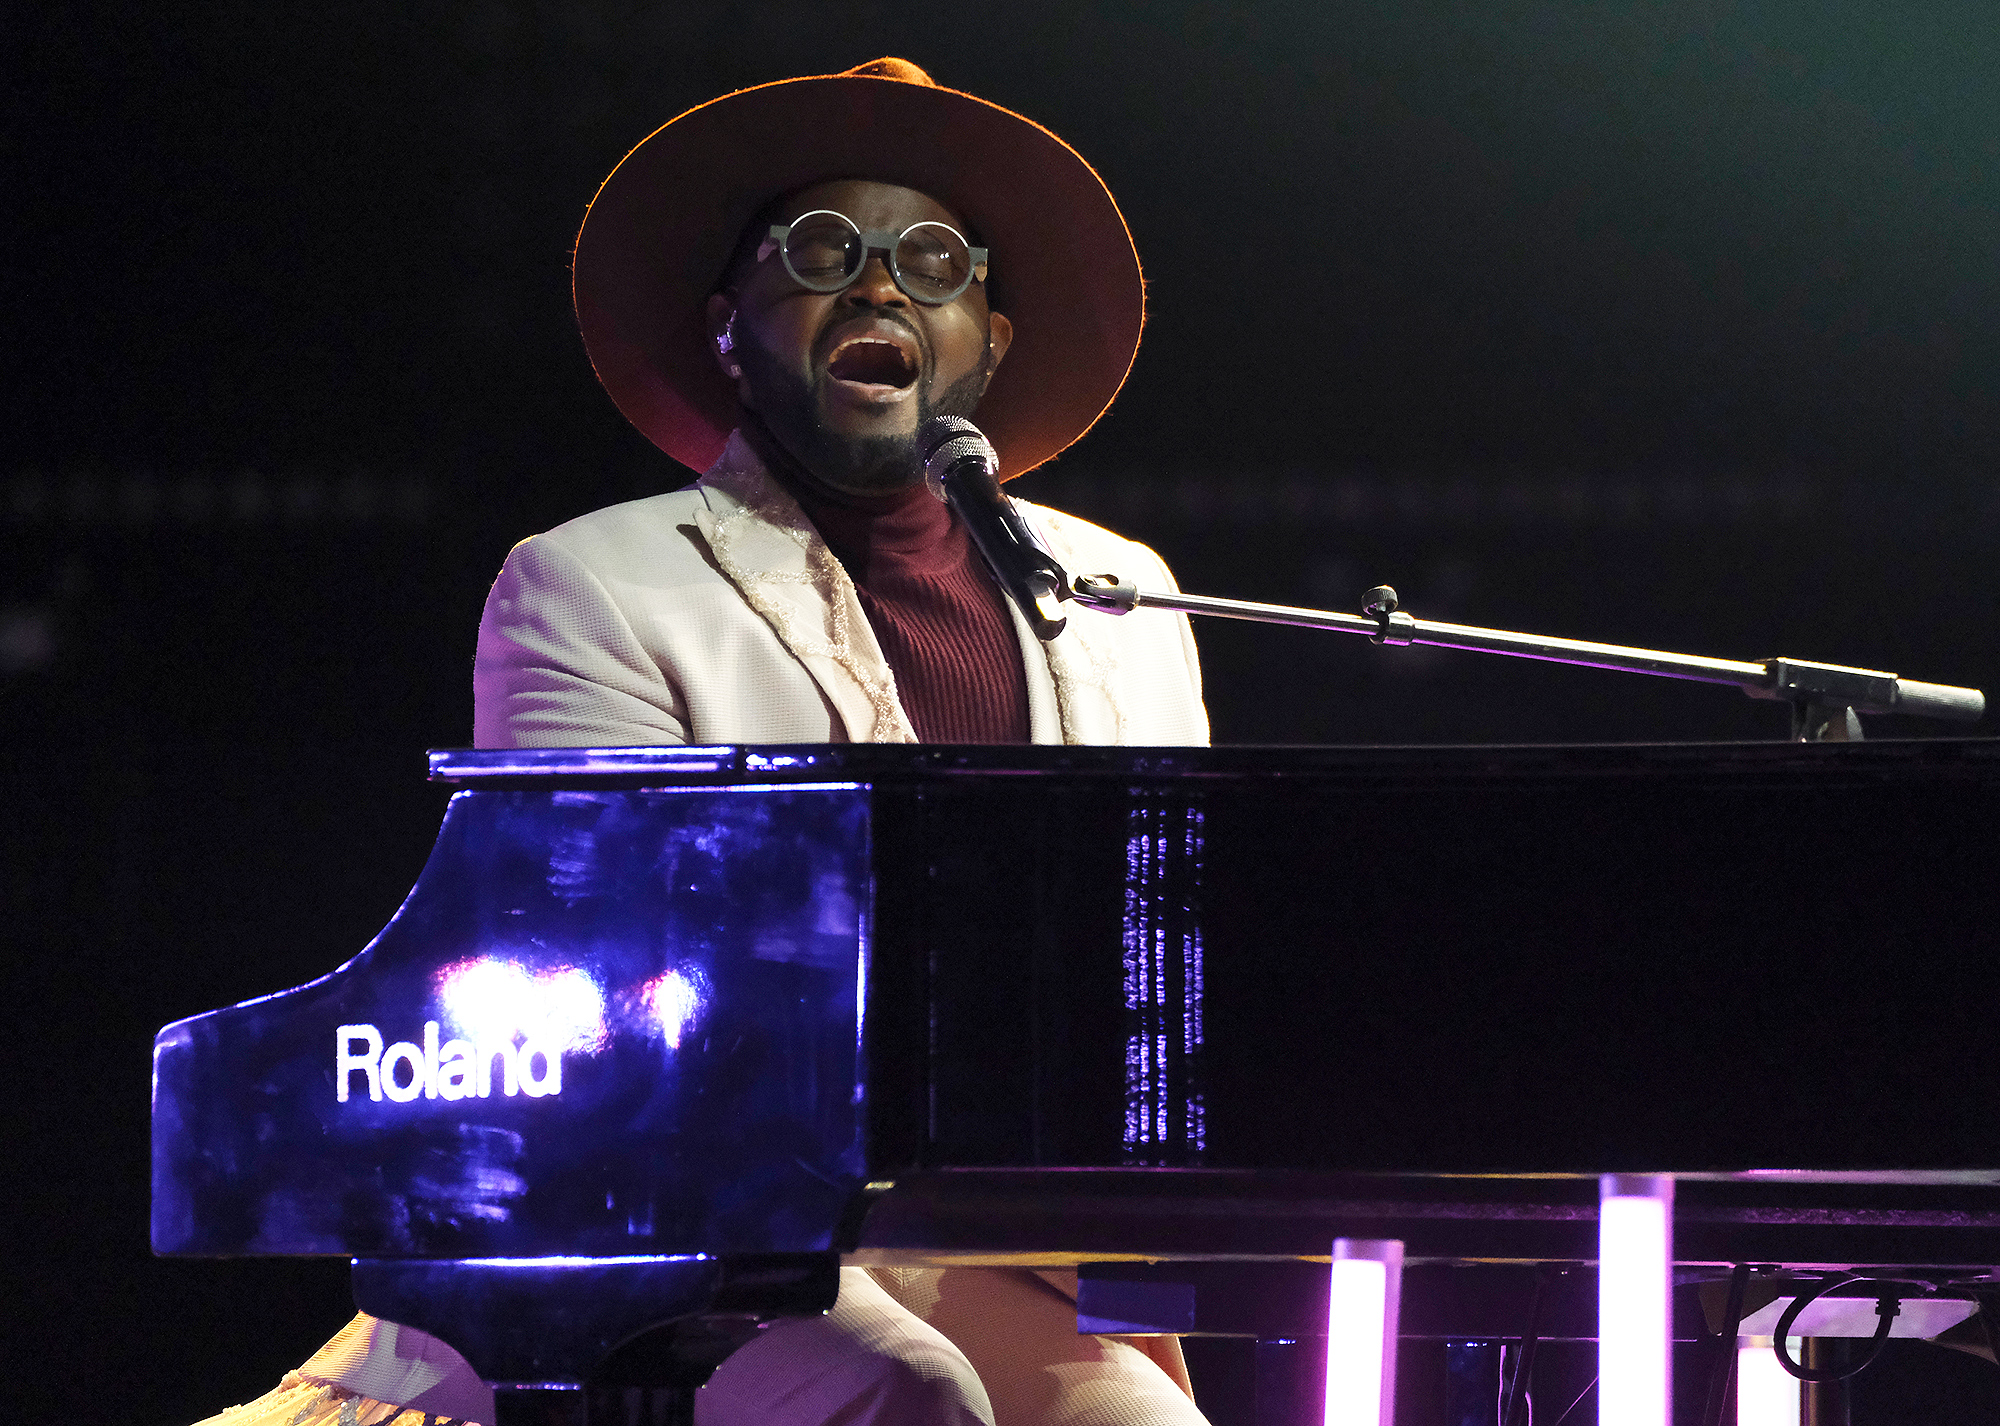 The Voice John Holiday Contestant Brings John Legend to Tears With Song Dedicated to Him and Chrissy Teigen After Baby Loss